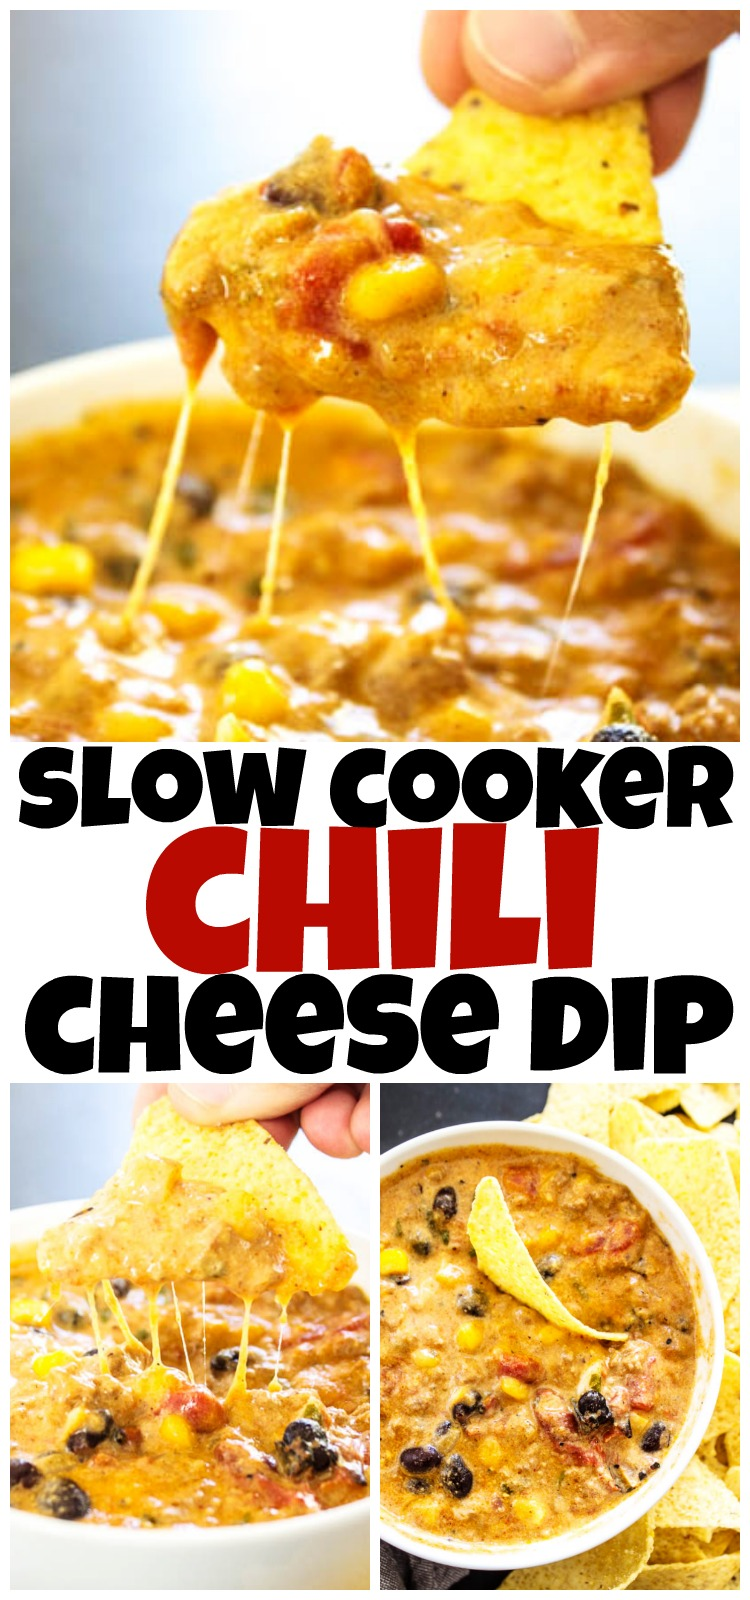 collage of photos of slow cooker chili cheese dip with tortilla chips